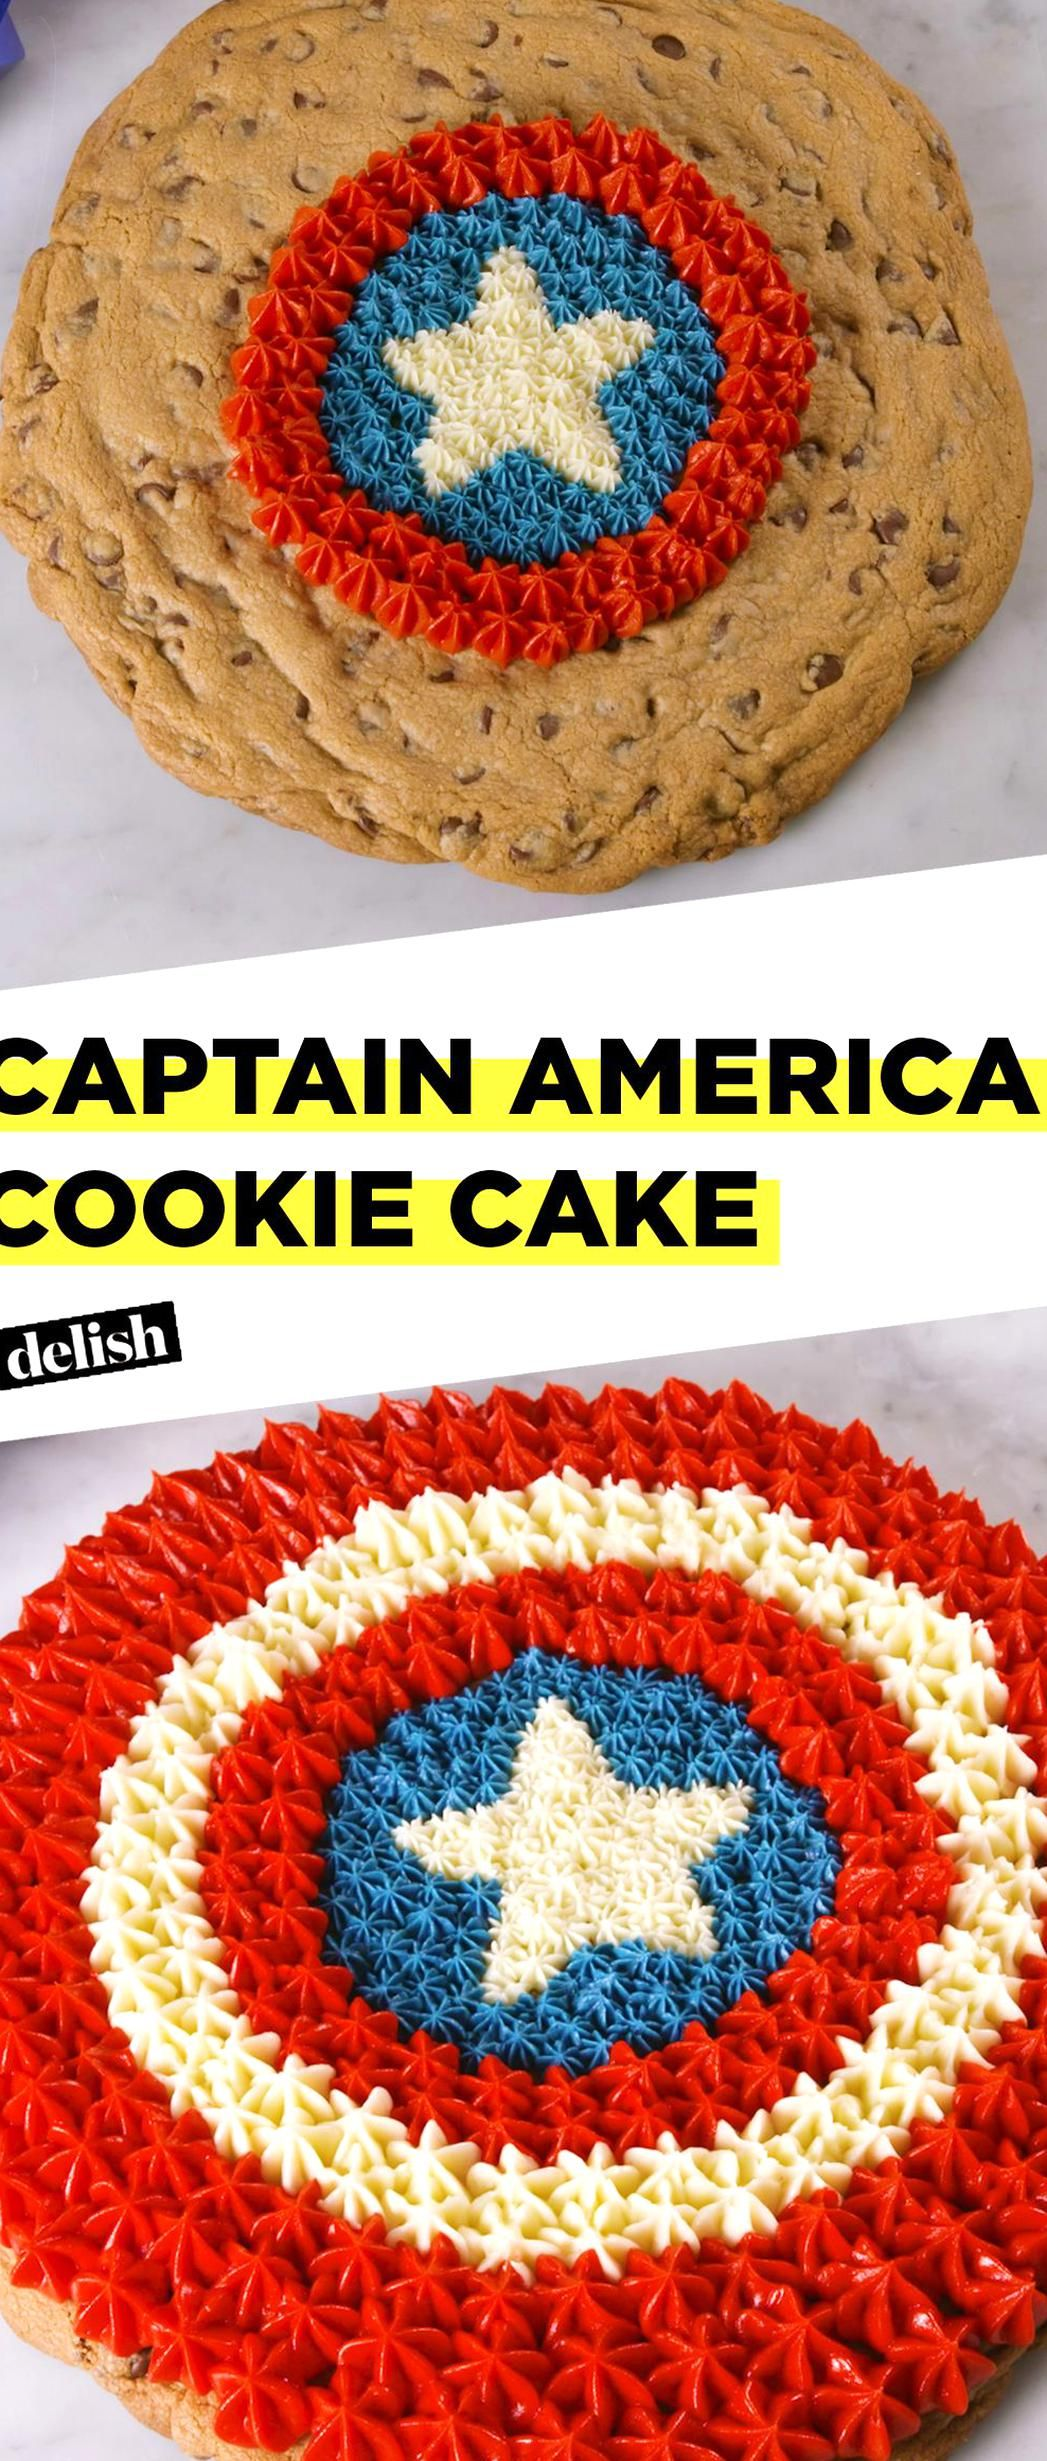 Even captain america couldnt finish this giant cookie cake